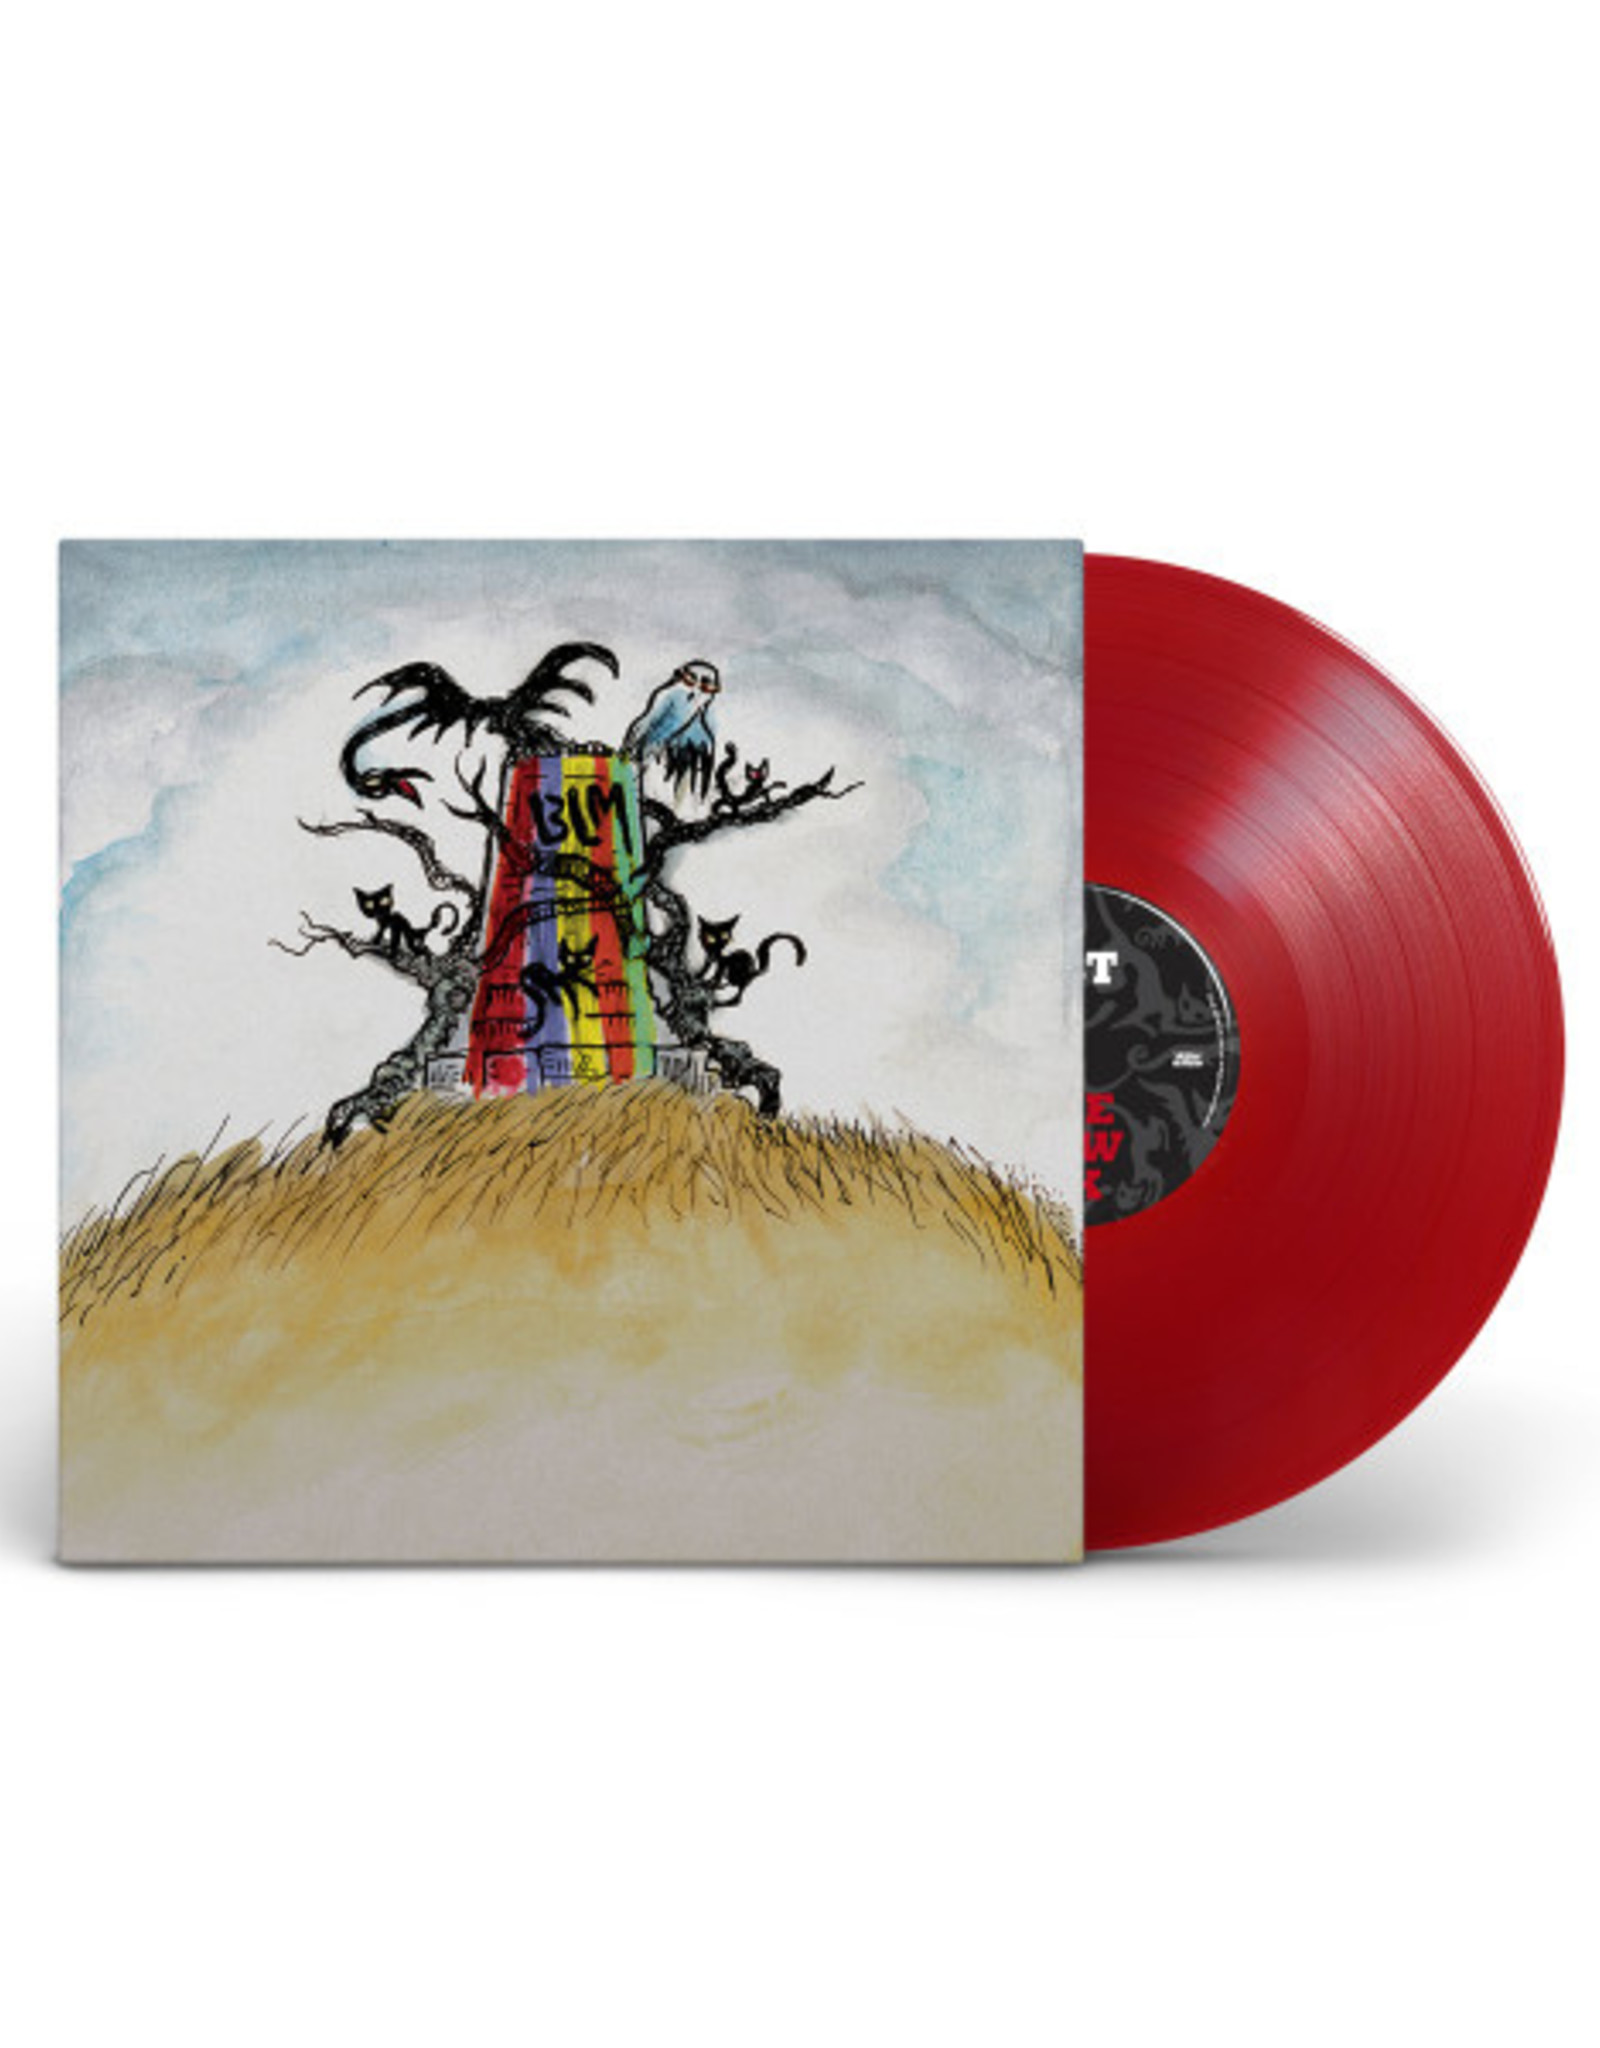 Drive-By Truckers - The New Ok (Colored Vinyl, Red)